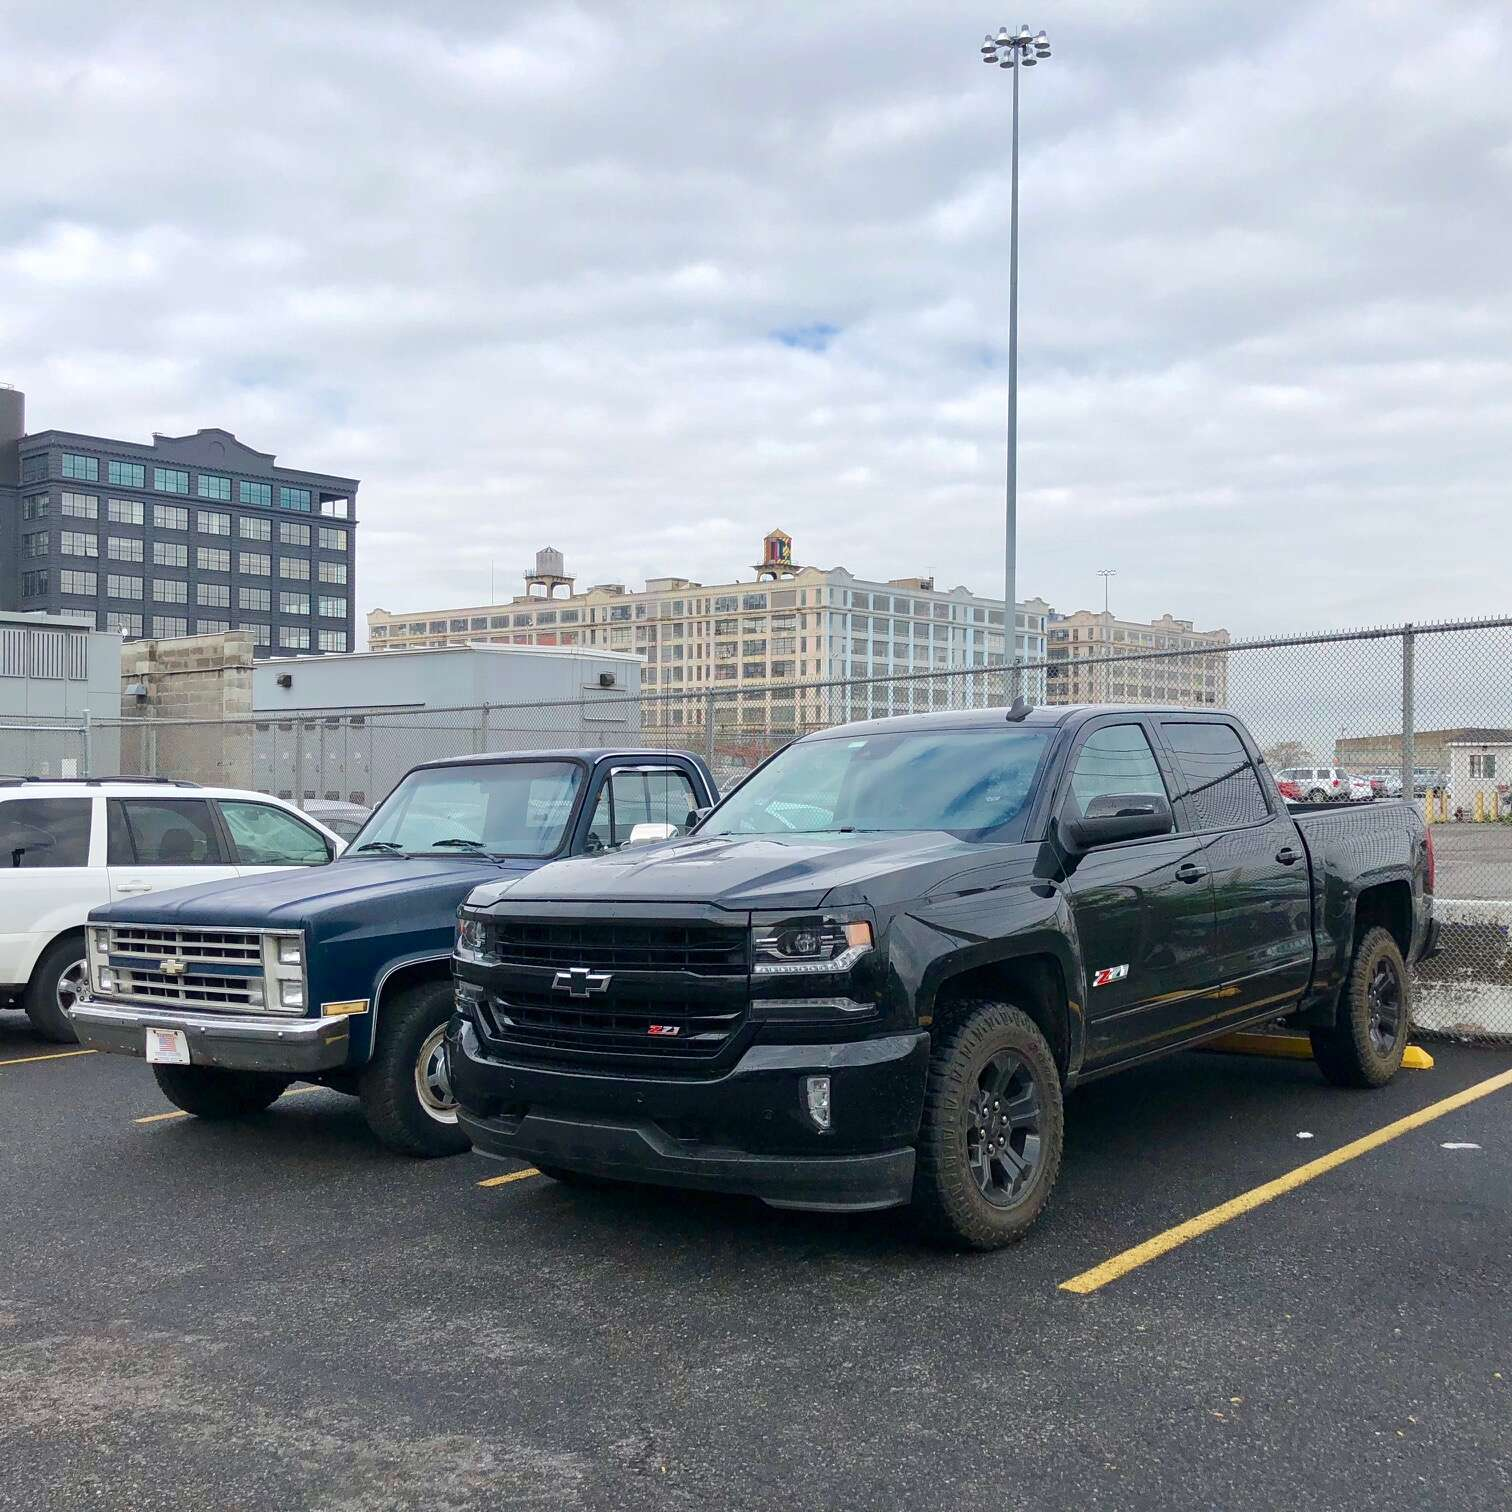 2018 Chevrolet Silverado Ltz Z71 Review Off Road Prowess On How To Replace Power Steering Hose Chevy Will Sabel Courtney